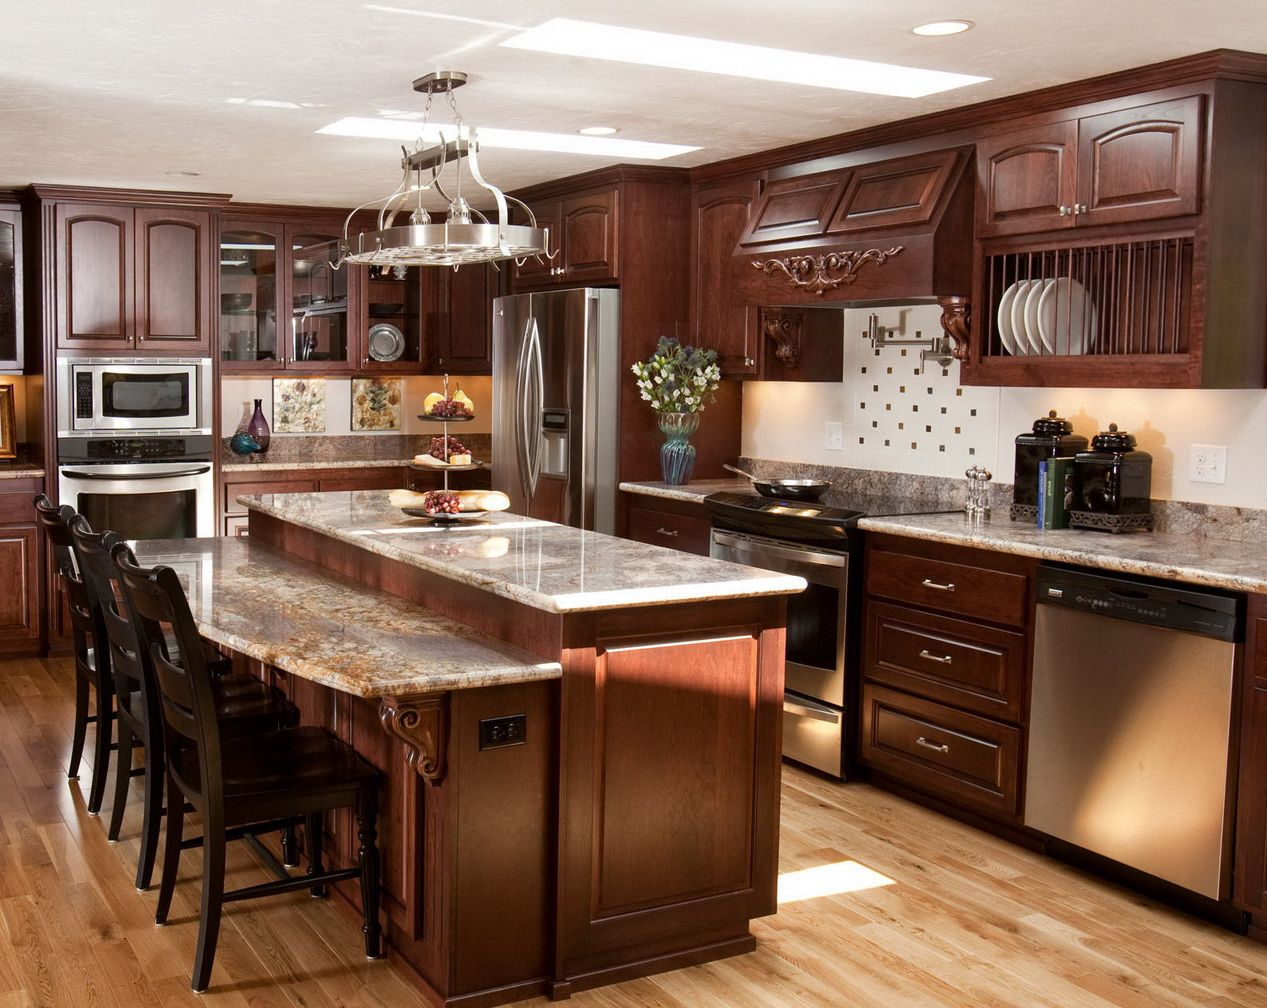 kitchen decorations. 18 Decoration Ideas For Kitchen Of Your Dream